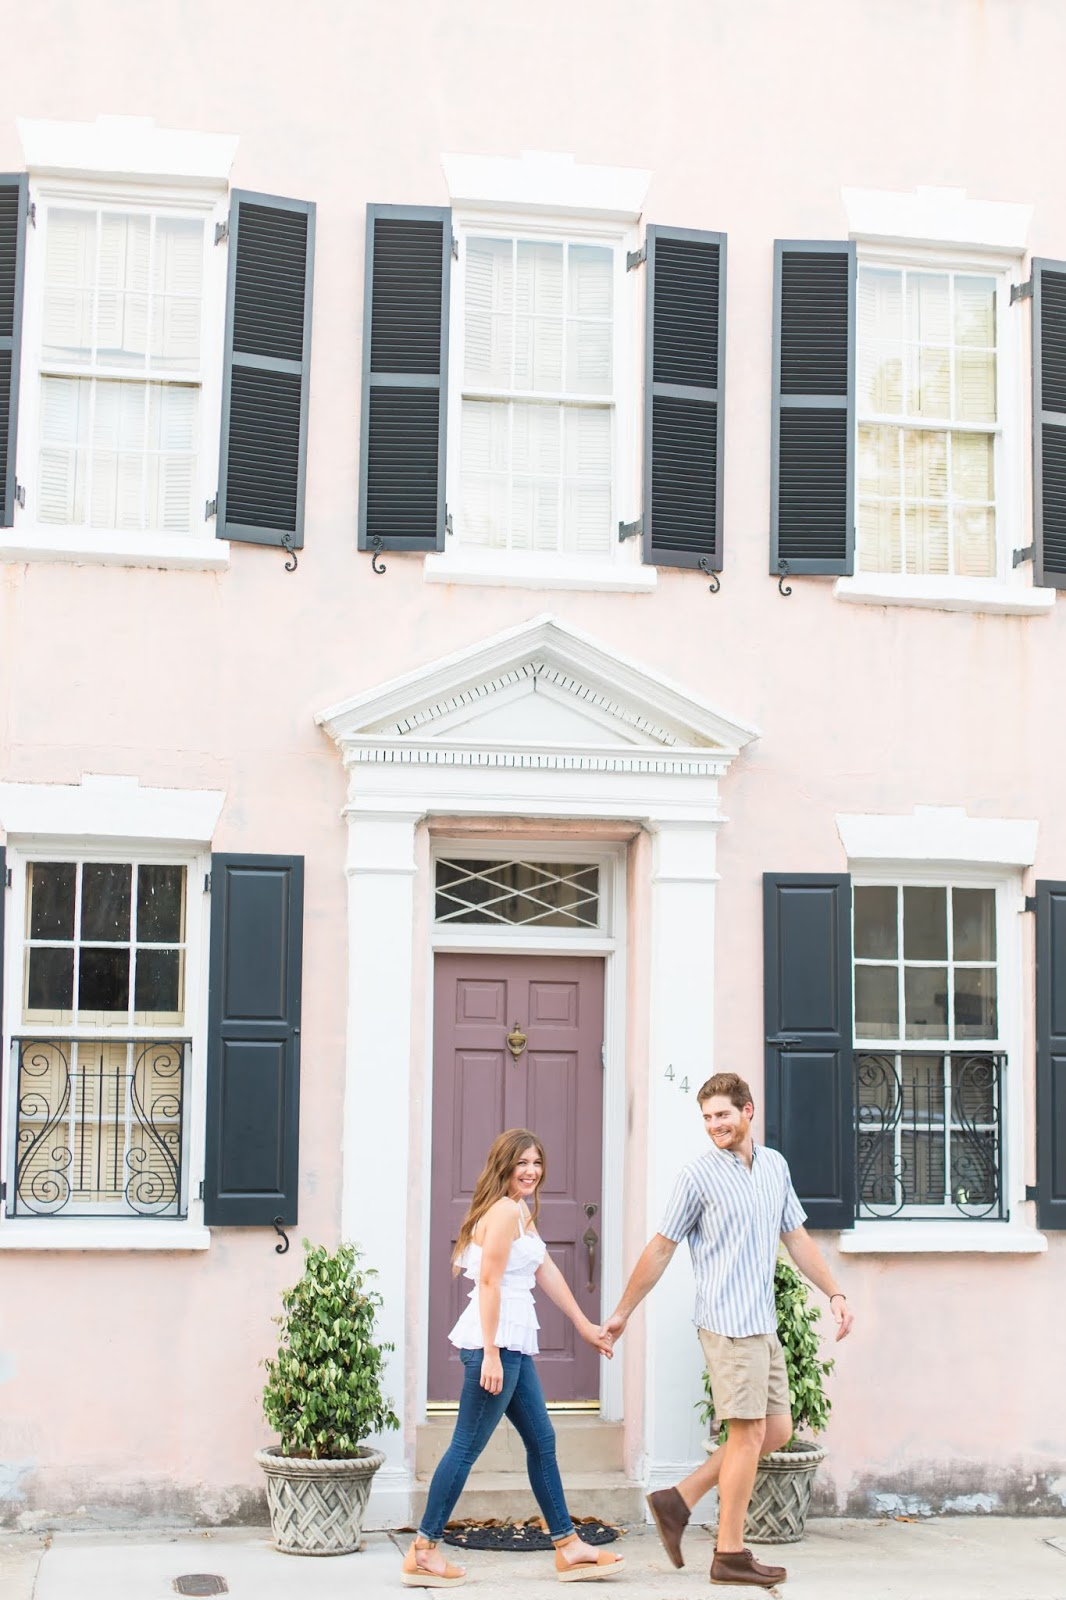 Engagement Photoshoot in Charleston, SC - Chasing Cinderella